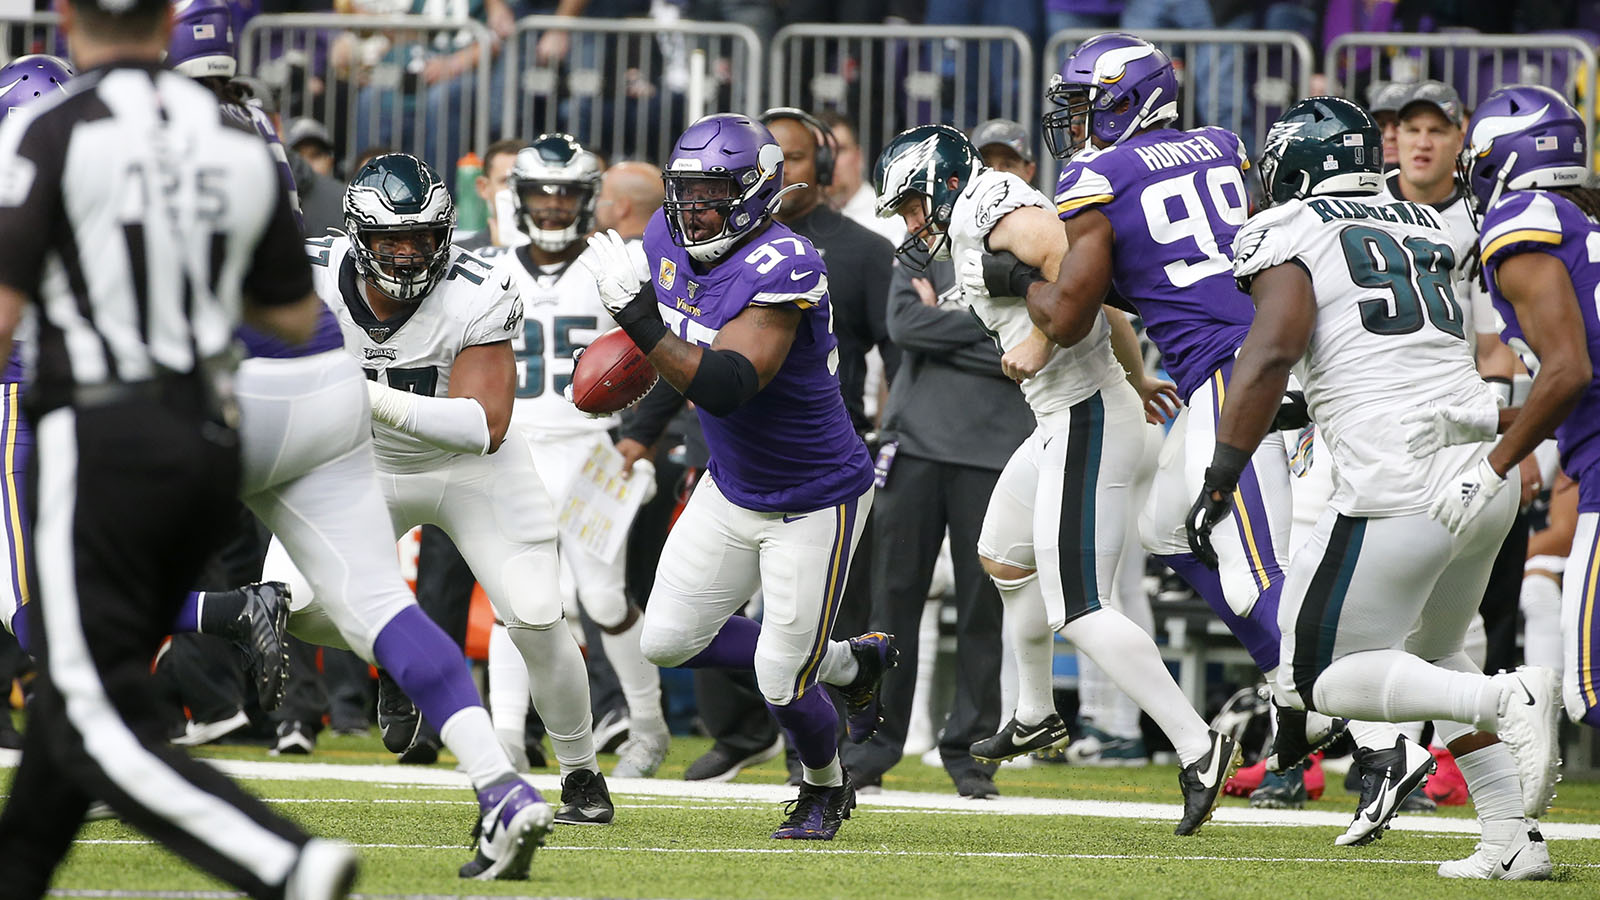 Minnesota Vikings defensive end Everson Griffen (97) returns an interception on a Philadelphia Eagles fake field goal attempt during the first half of an NFL football game, Sunday, Oct. 13, 2019, in Minneapolis. (AP Photo/Bruce Kluckhohn)